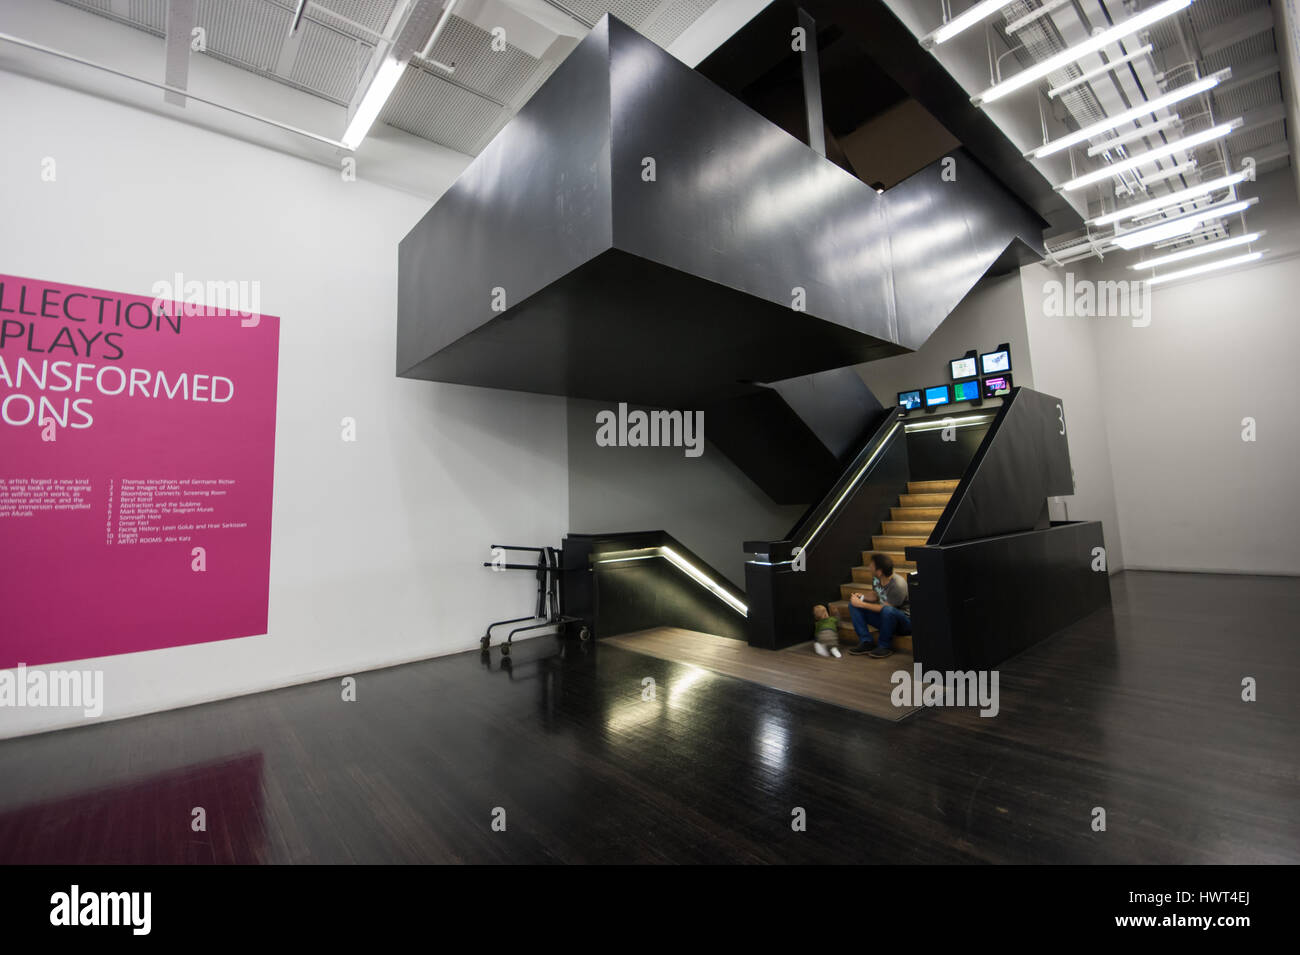 Interactive touch screens, part of the Bloomberg Connects digital learning system installation at the Tate Modern - Stock Image